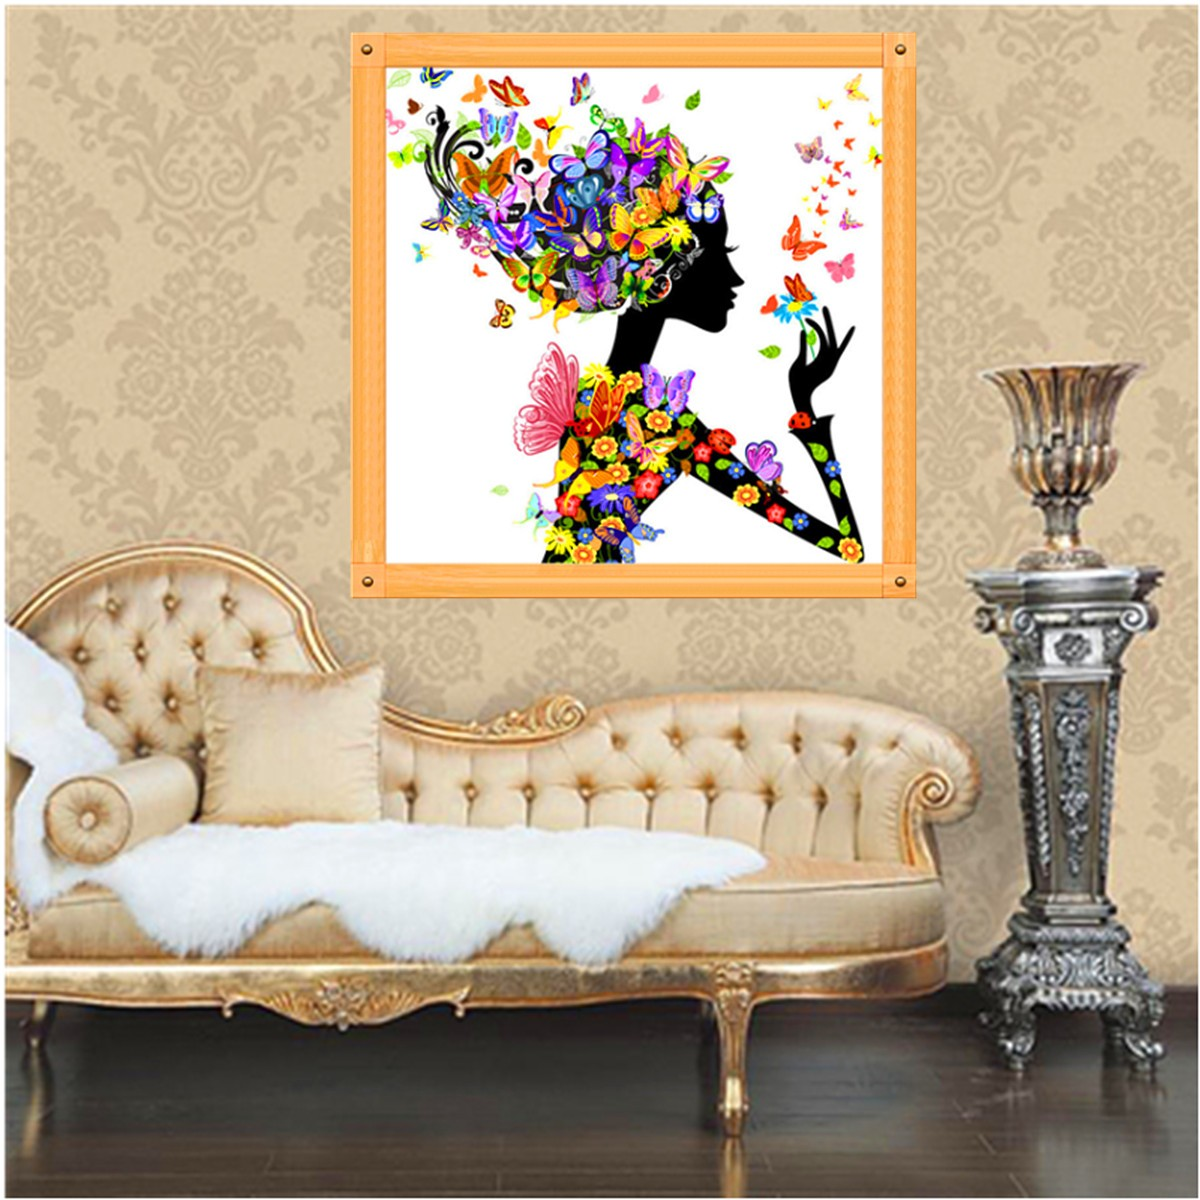 Flower fairy design 5d diamond painting cross stitch kits for Home decor 5d